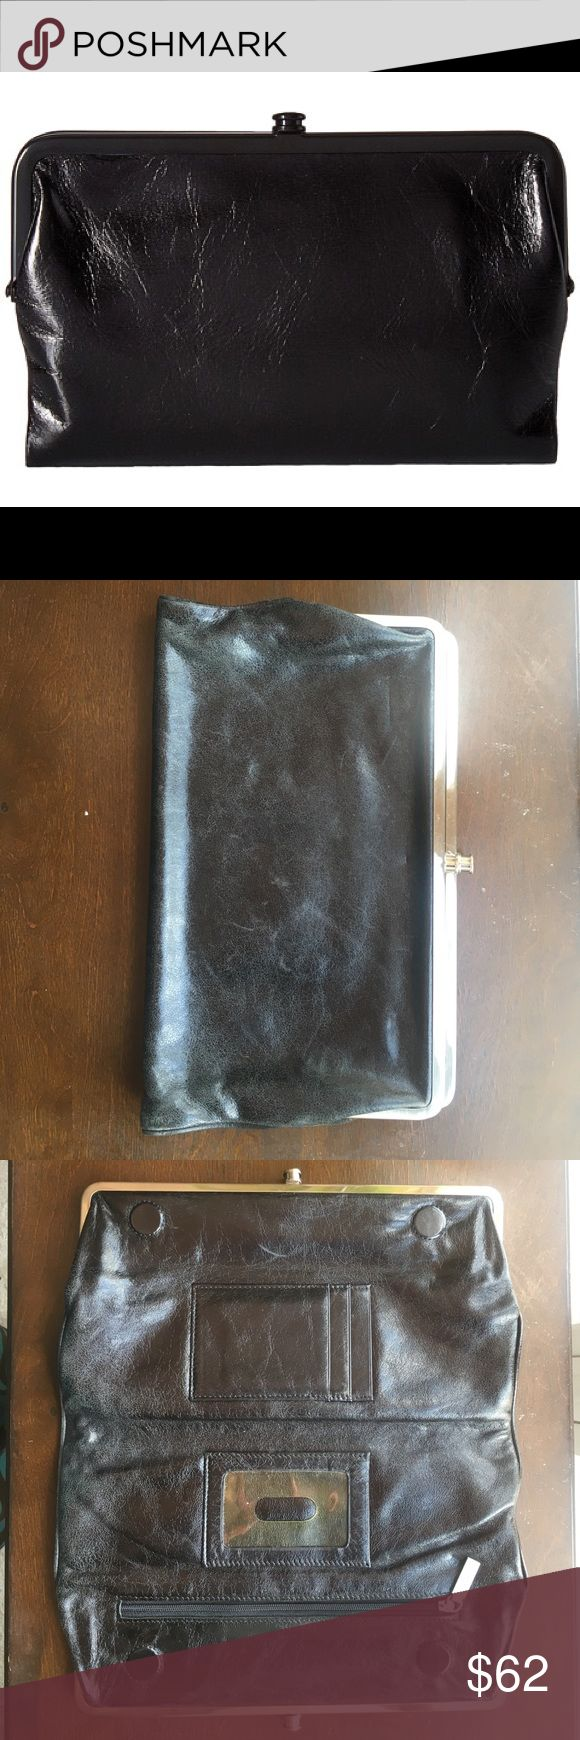 Hobo International Glory Clutch/Wallet This clutch is full of form & function: packs in a lot of details. Black leather is slightly distressed. Two kiss-lock pockets connect w/ magnetic closure in the center. Two exterior pockets: one is a large pouch for make-up or any other essentials & the other is a wallet with 8 slits for cards, one bigger slit for papers (cash, receipts, checks), and a zip-closure pocket. Between the two main kiss-locket pockets is space for an ID, more cards, and one more zip picket. Lined in a floral canvas. HOBO Bags Clutches & Wristlets